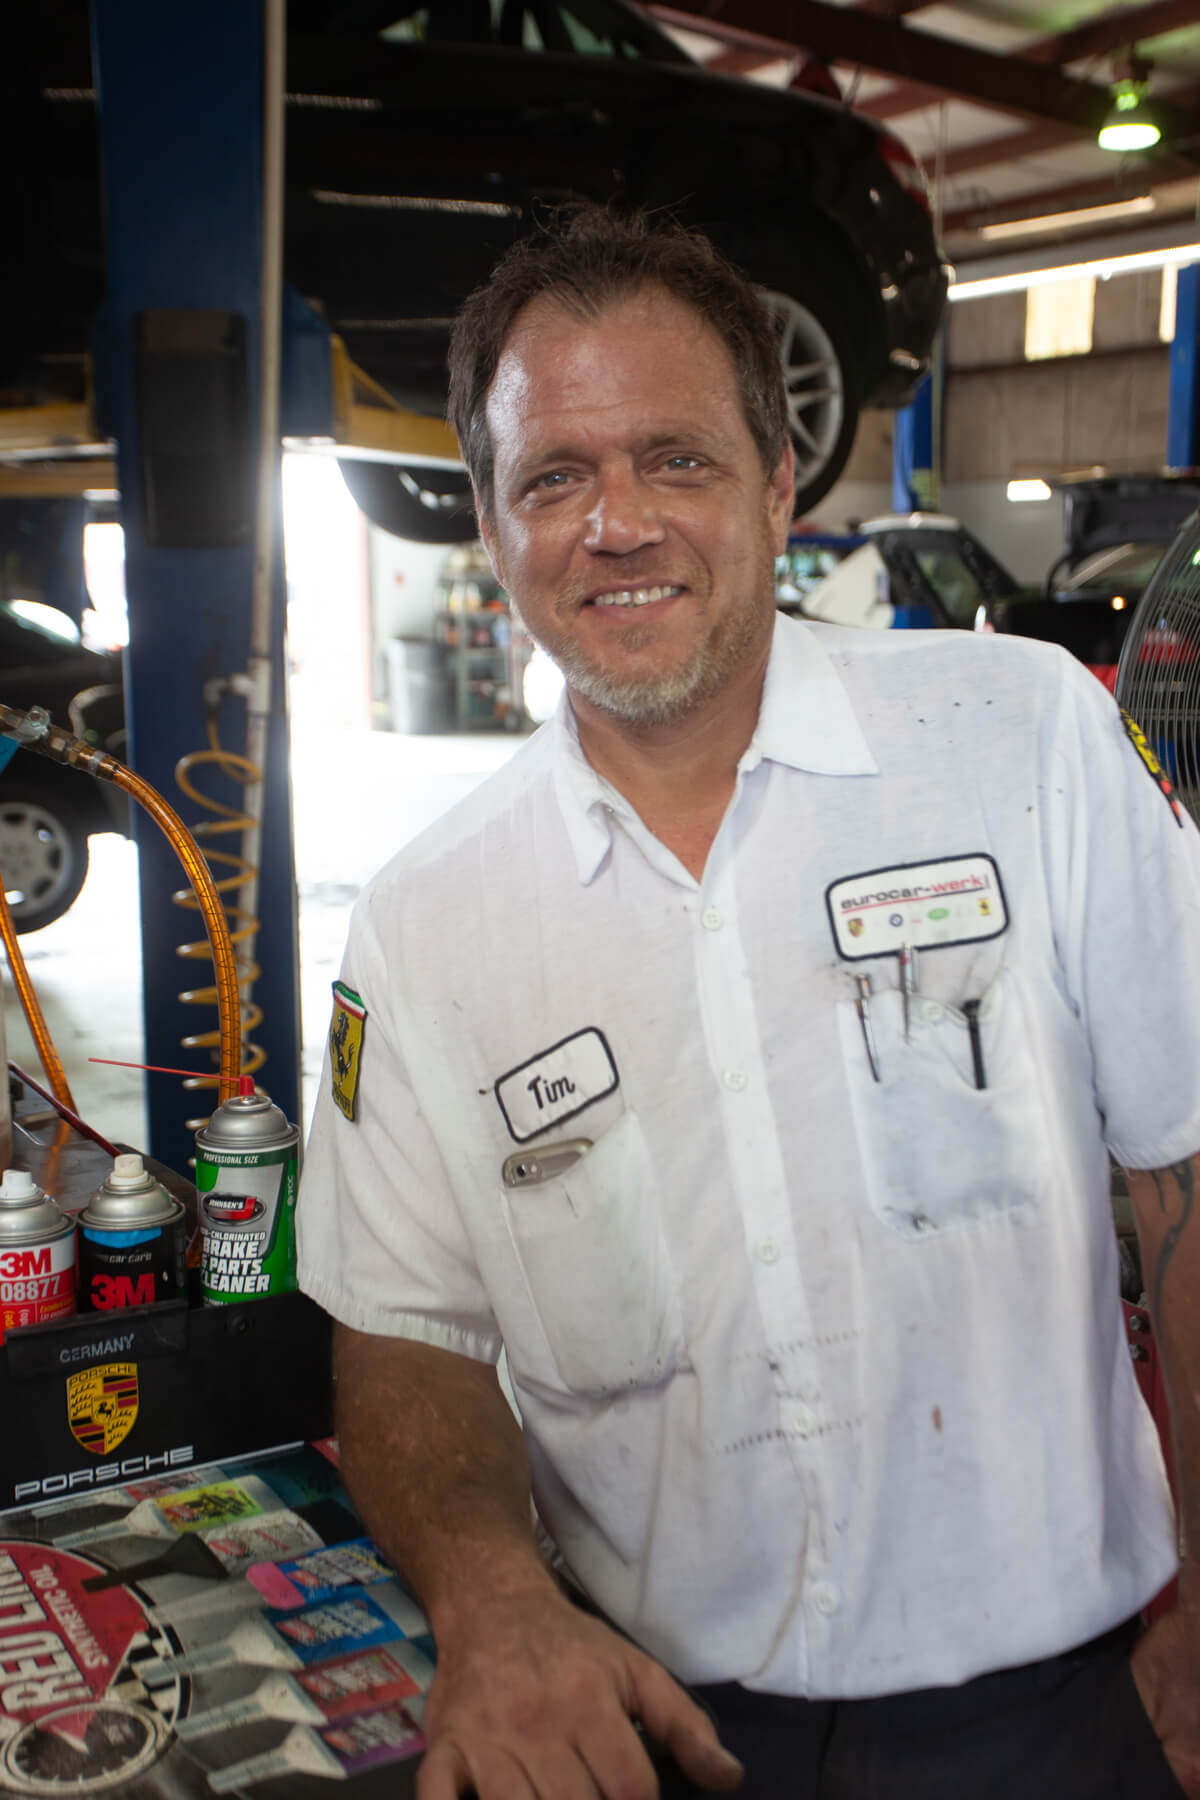 Eurocar-Werk's shop foreman is Tim